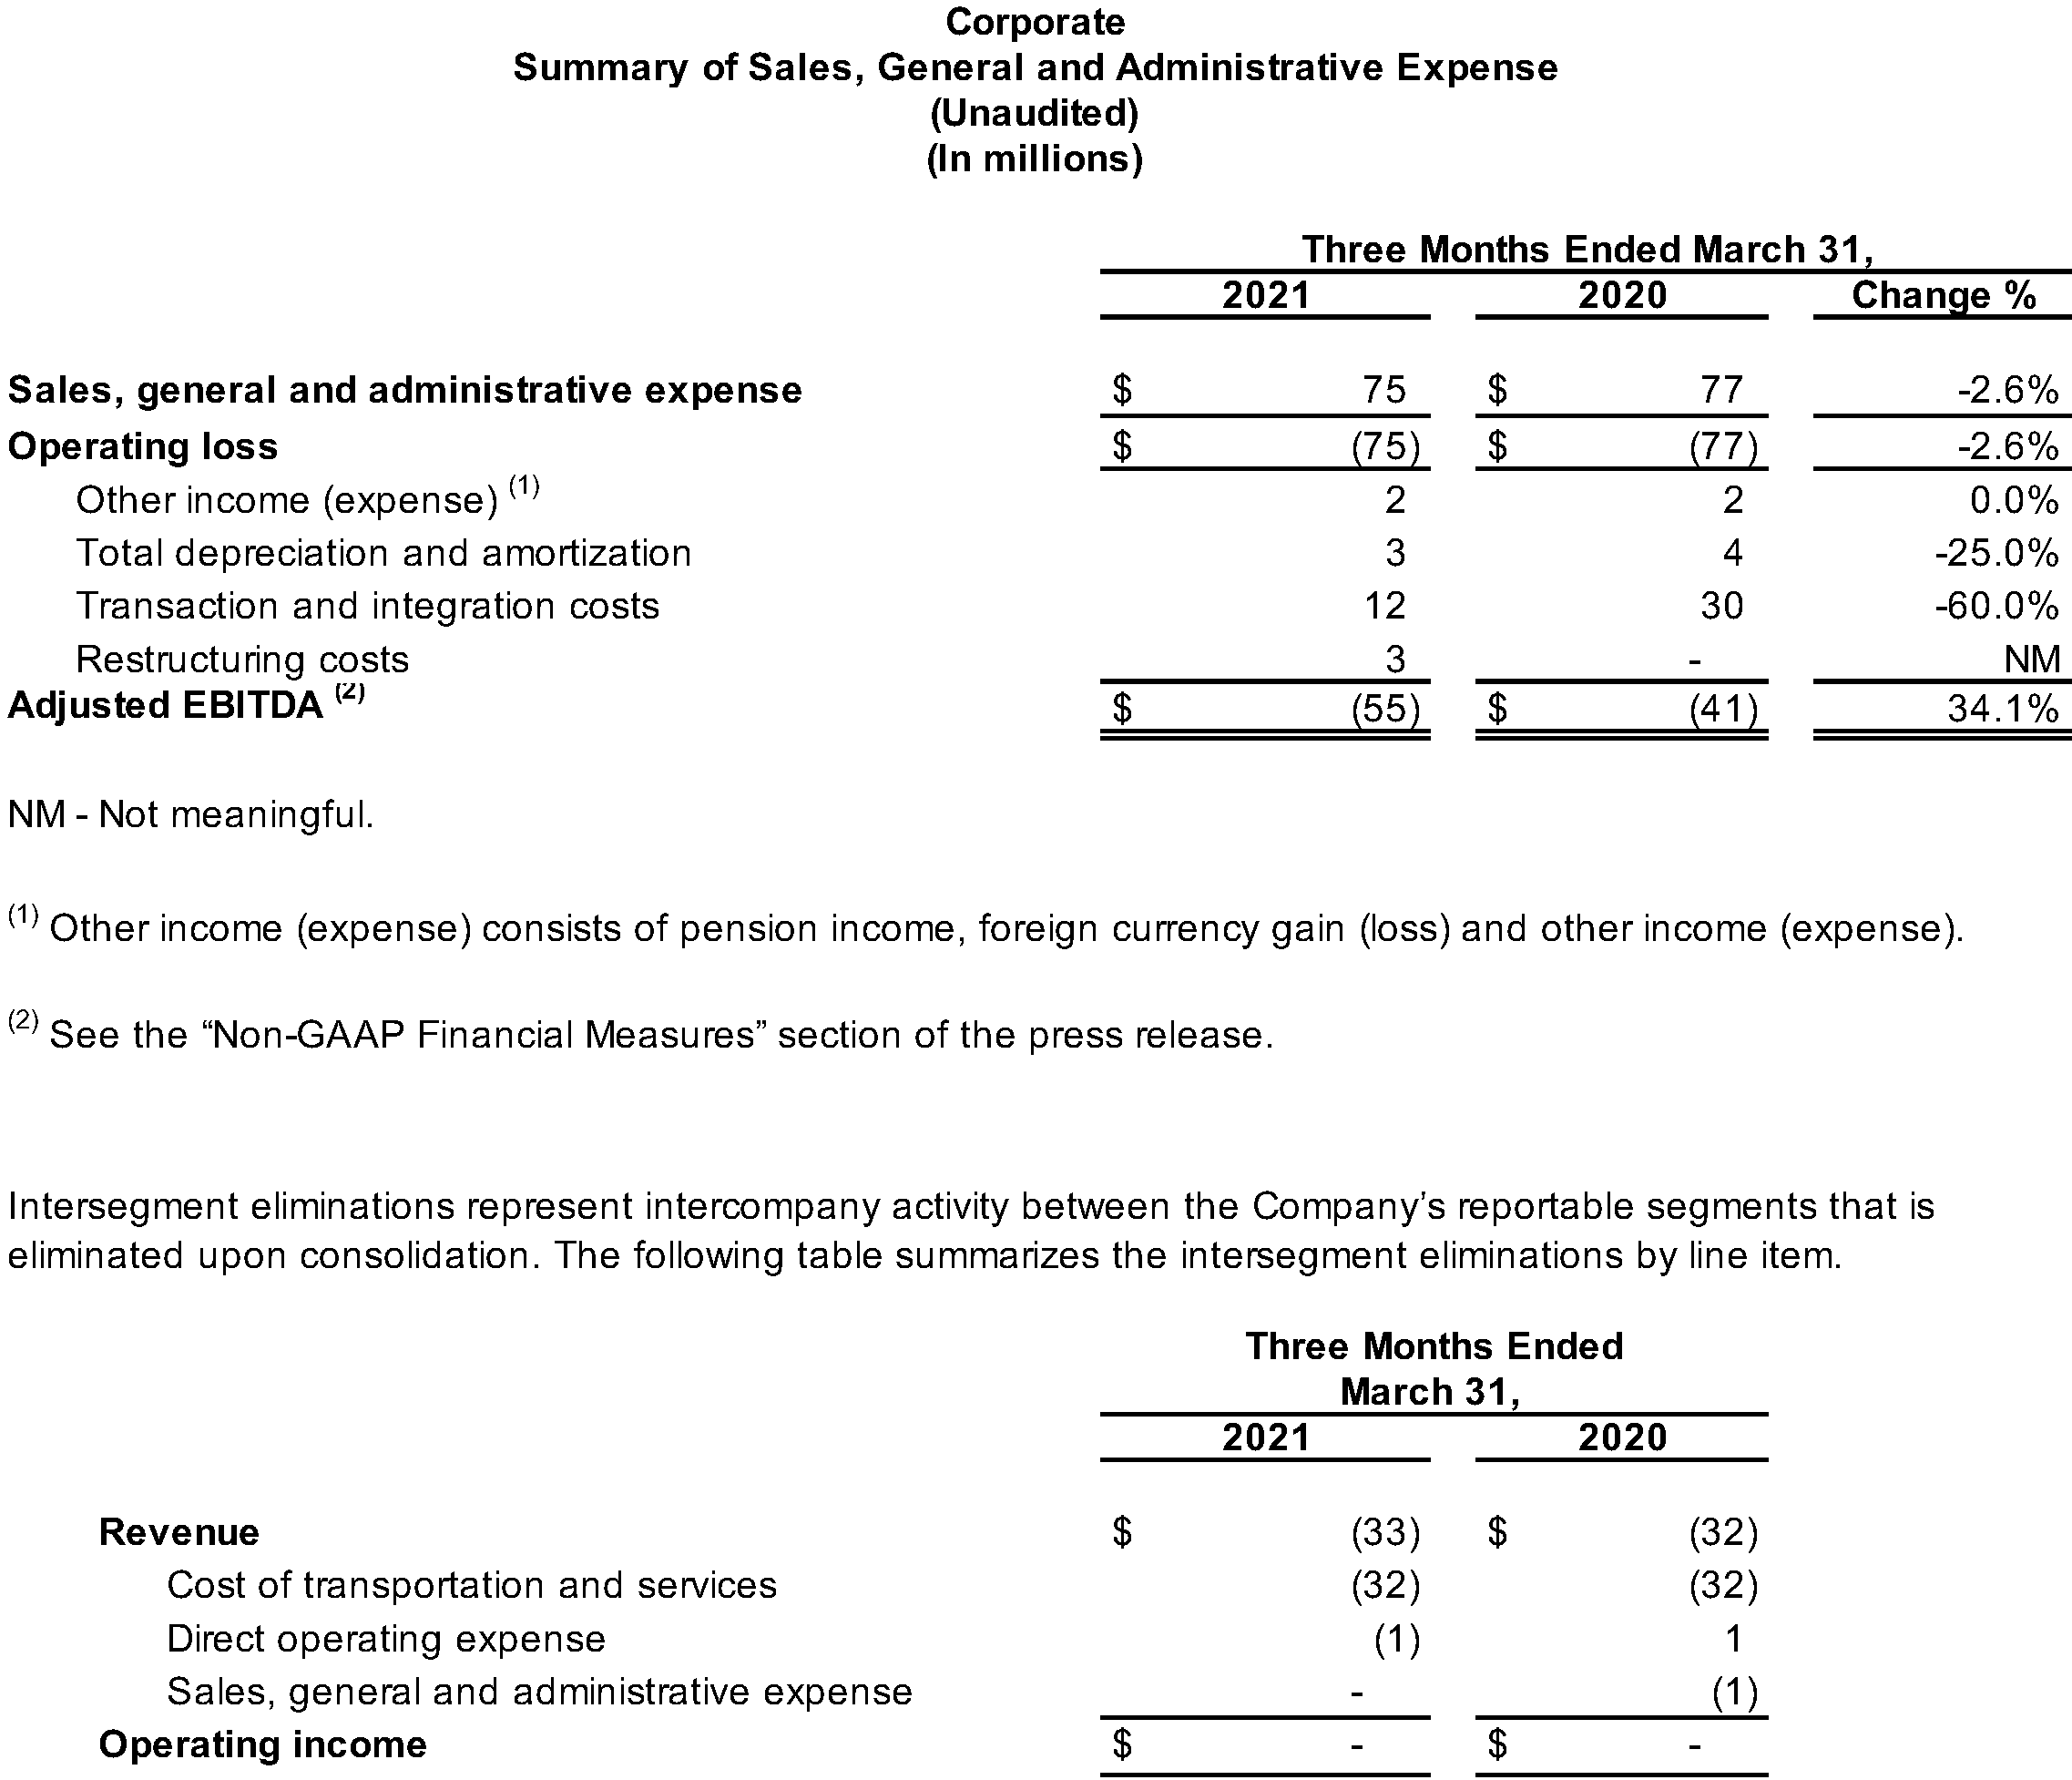 Corporate Summary of Sales, General and Administrative Expense (Unaudited)